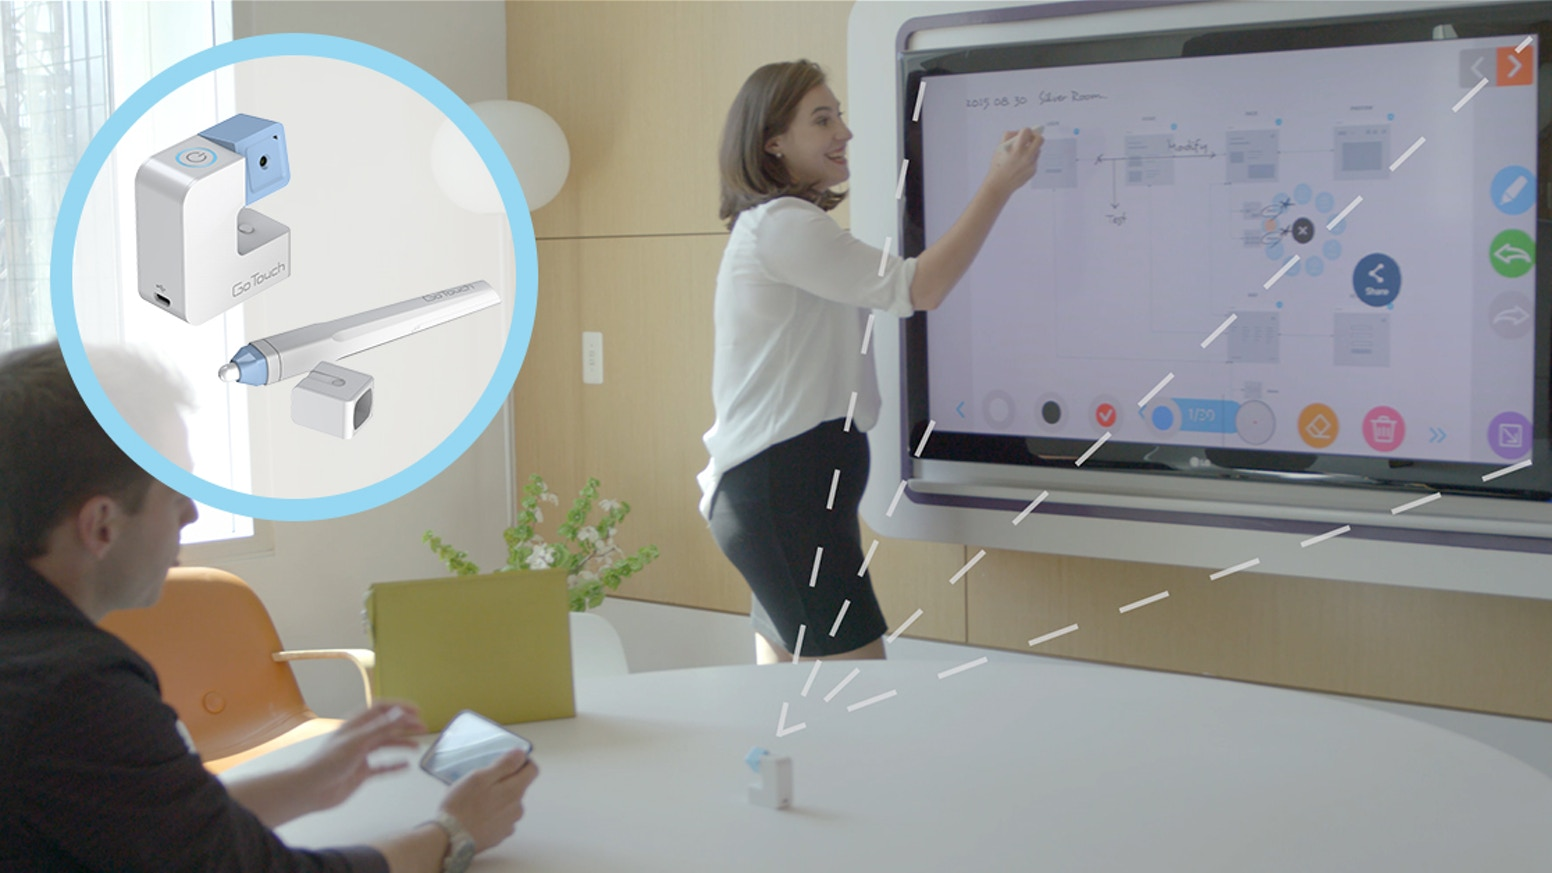 GoTouch is portable, easy-to-use, and instantly turns any TV or projector into a giant interactive whiteboard you can write or draw on.